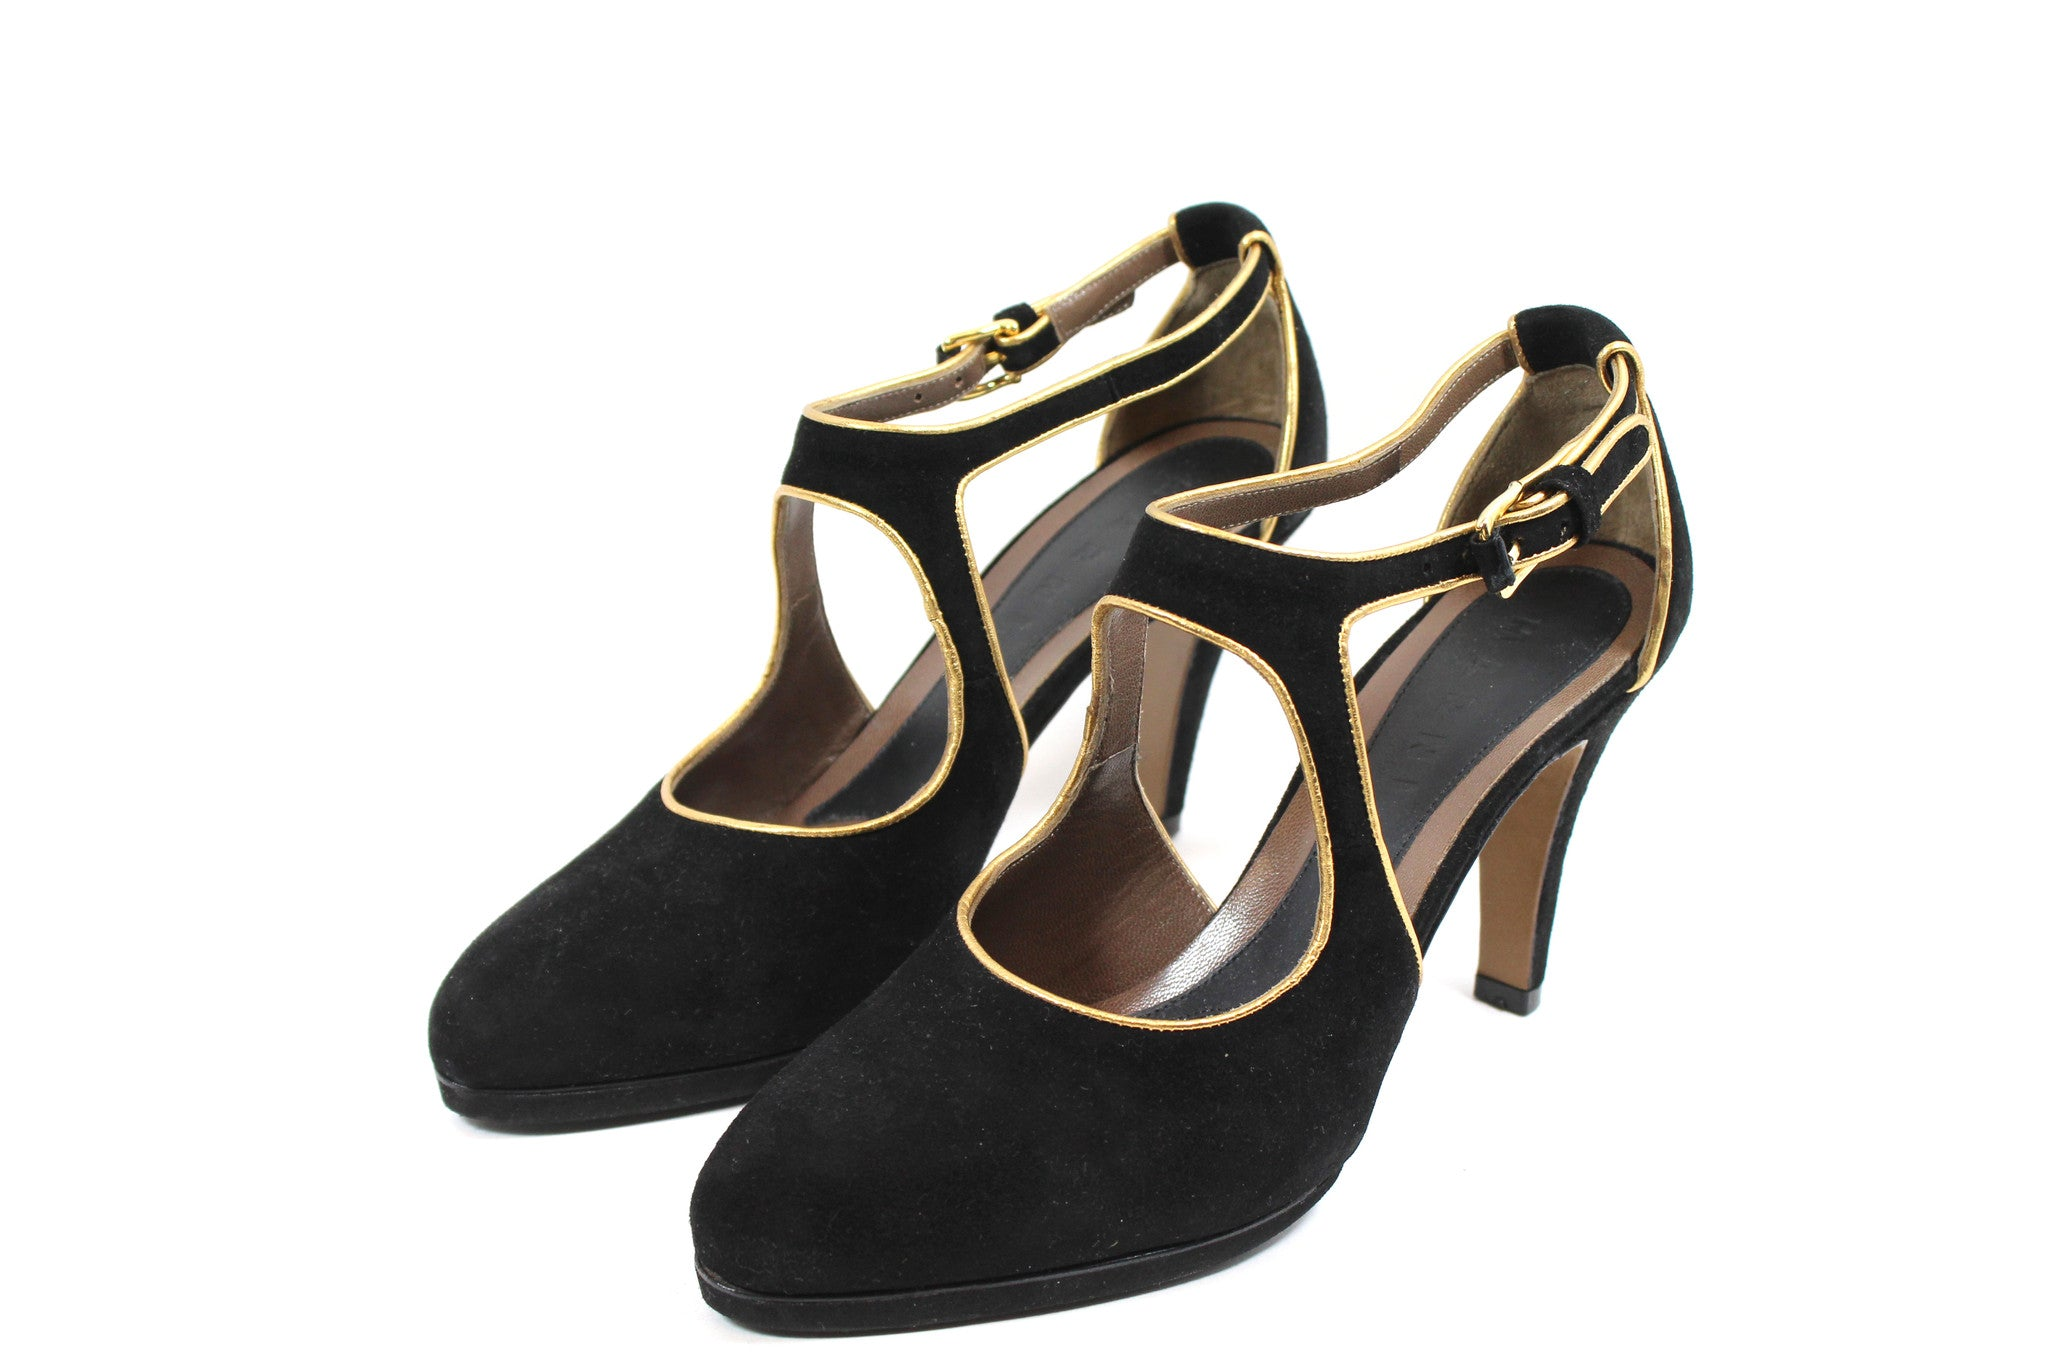 Marni Suede Pumps w/ Gold Trim (Size 38.5)